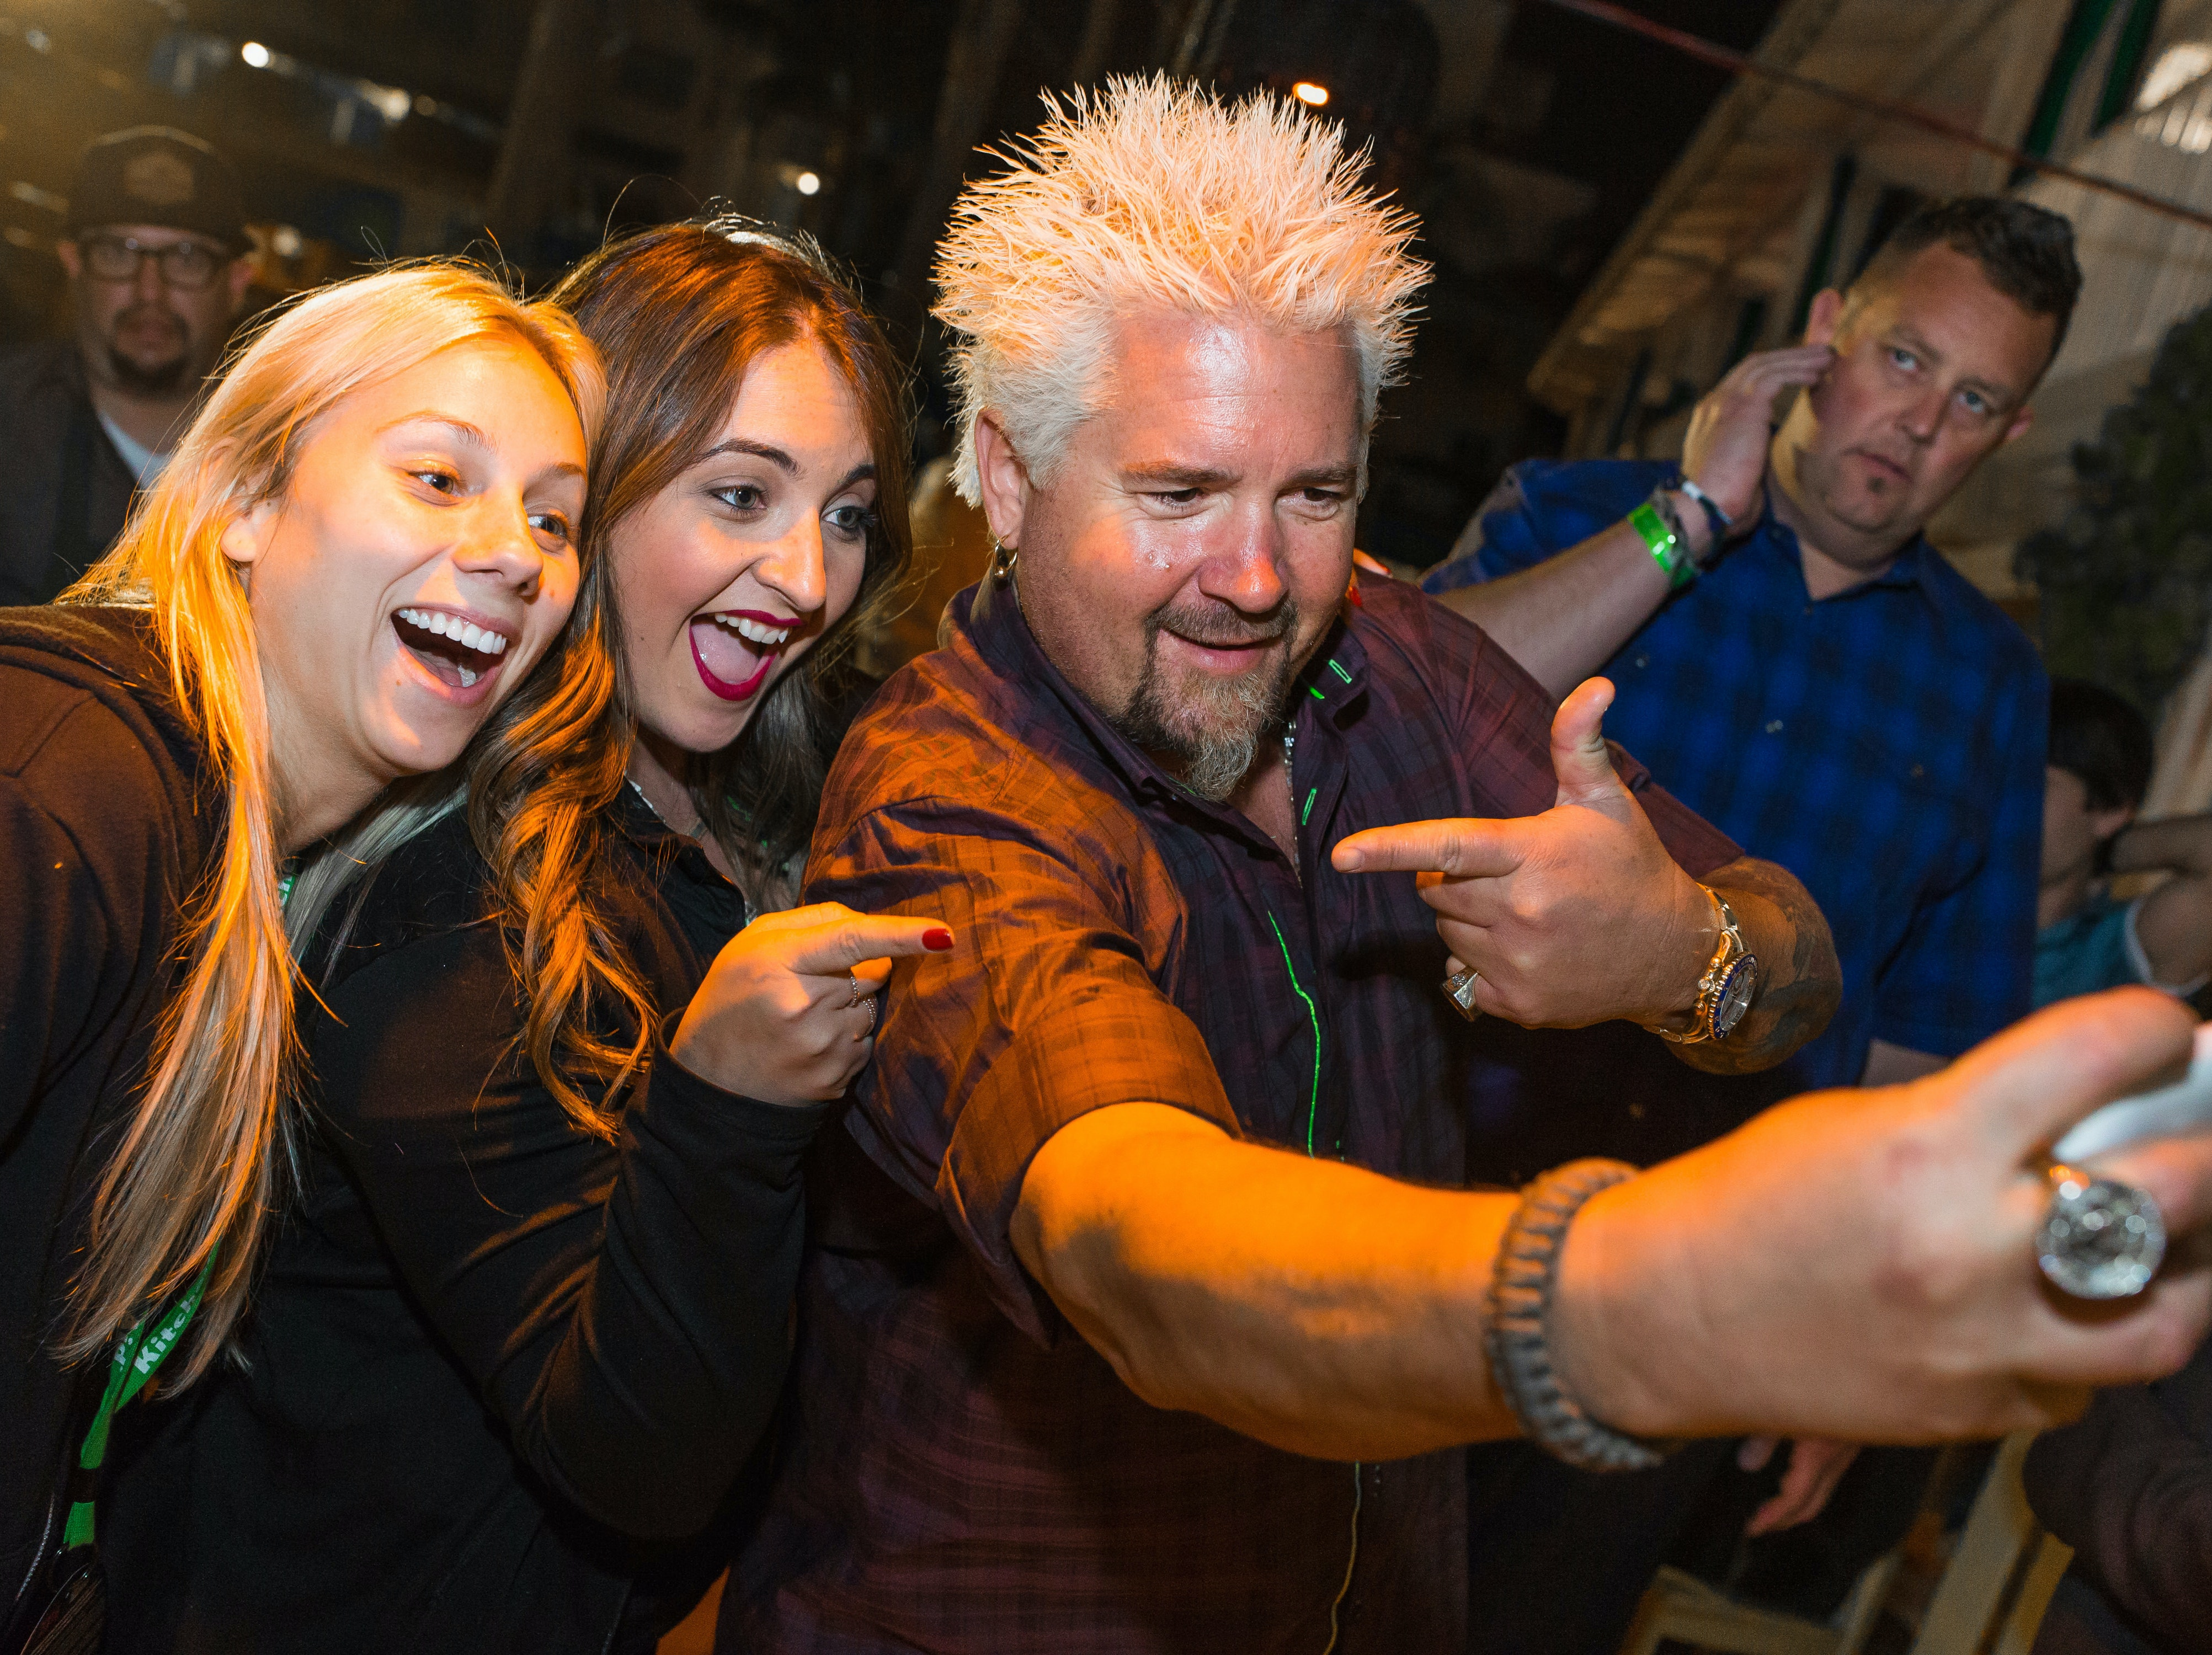 Guy Fieri poses with guests at the 2016 Food Network & Cooking Channel South Beach Wine & Food Festival Presented By FOOD & WINE at Surfcomber Hotel on February 27, 2016 in Miami Beach, Florida.  (Photo by Dylan Rives/Getty Images for SOBEWFF®)